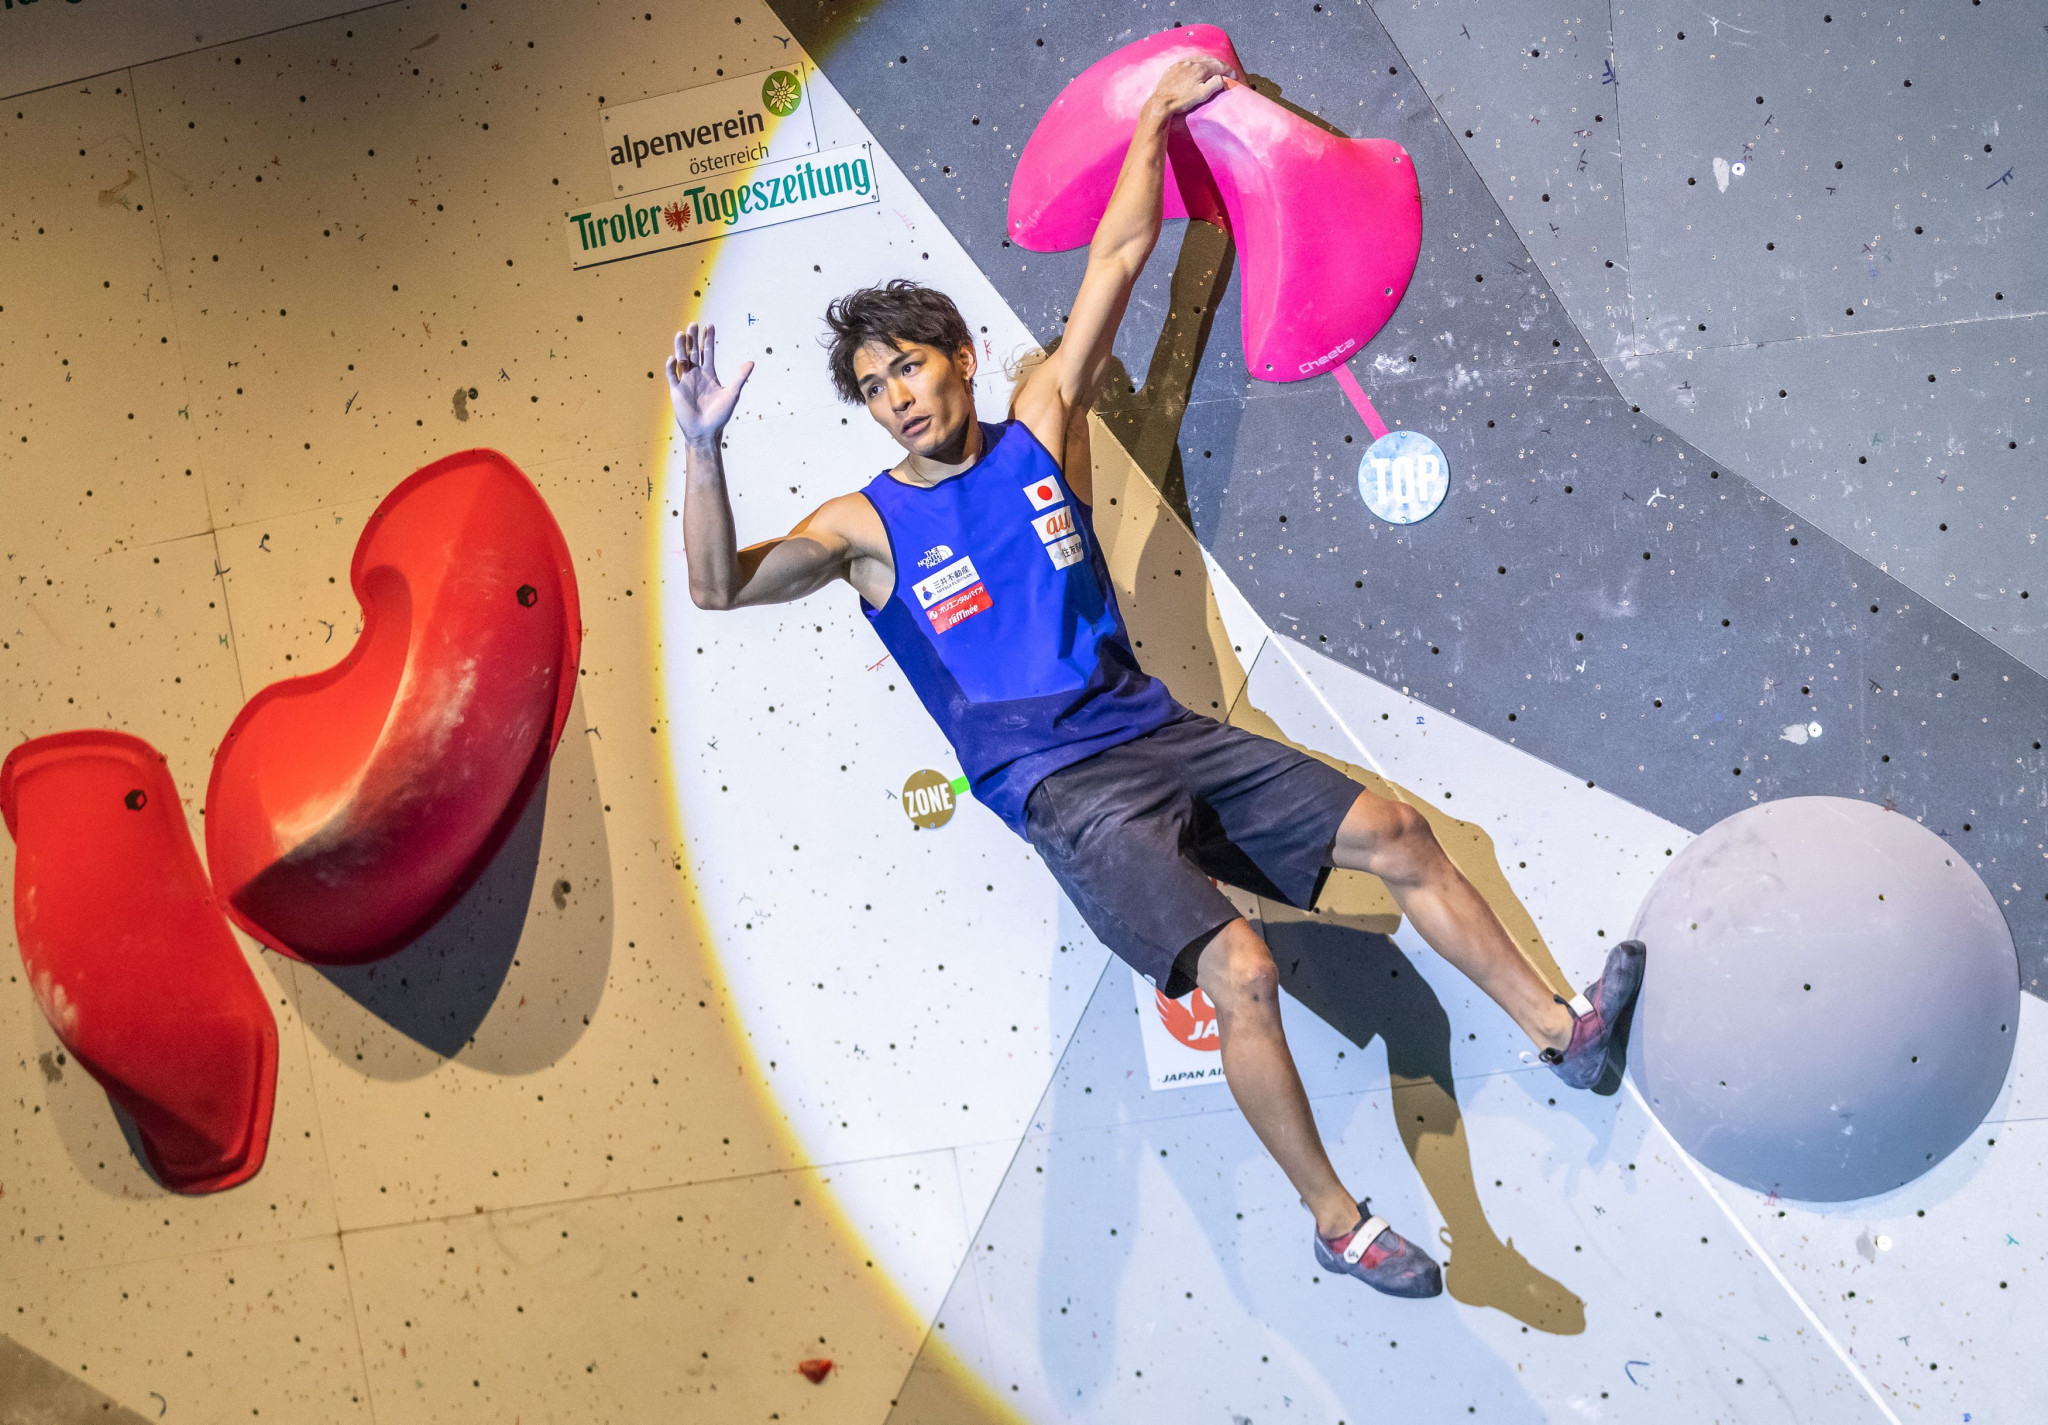 Sport climbing poised for historic Olympic debut at Tokyo 20